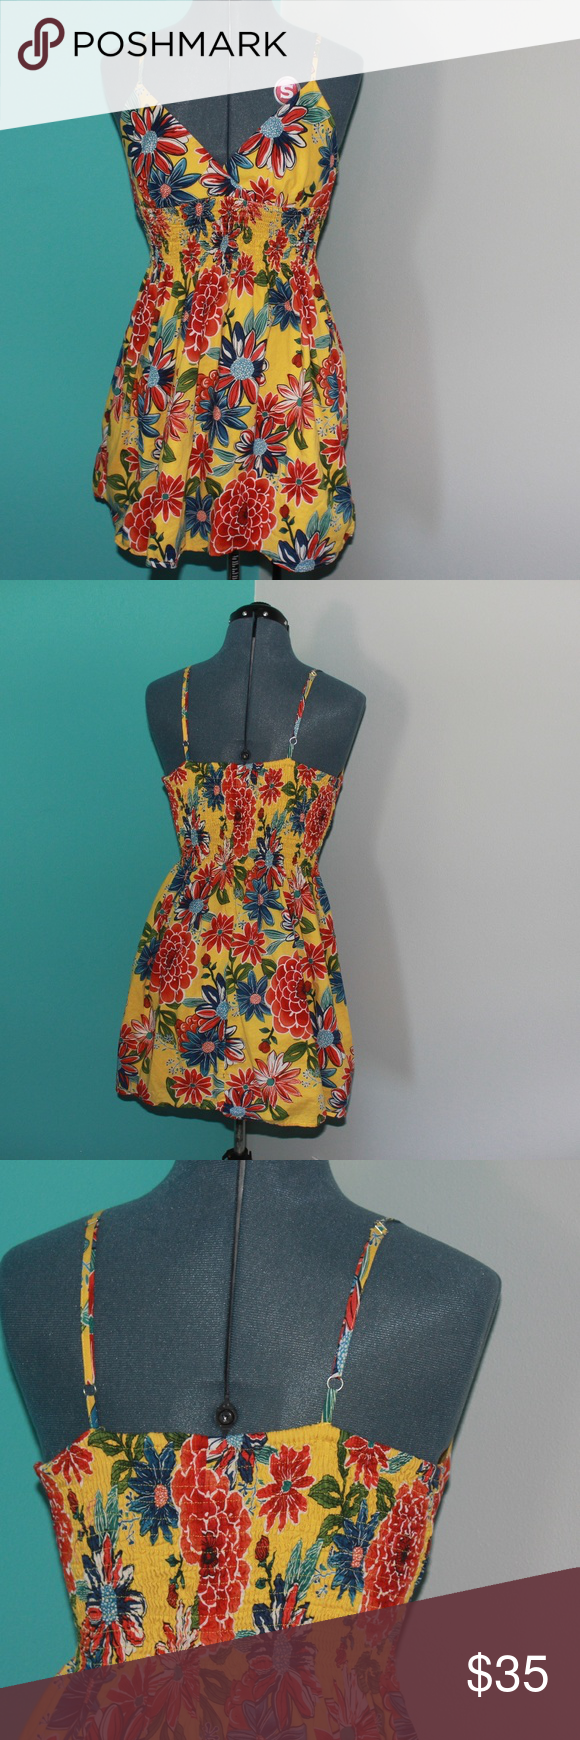 eefa5be7fcef Tropical Summer Dress Yellow Xhilaration Quality  No wear at all! It s only  been worn a few times and it looks new! Description  Stylish yellow and red  ...